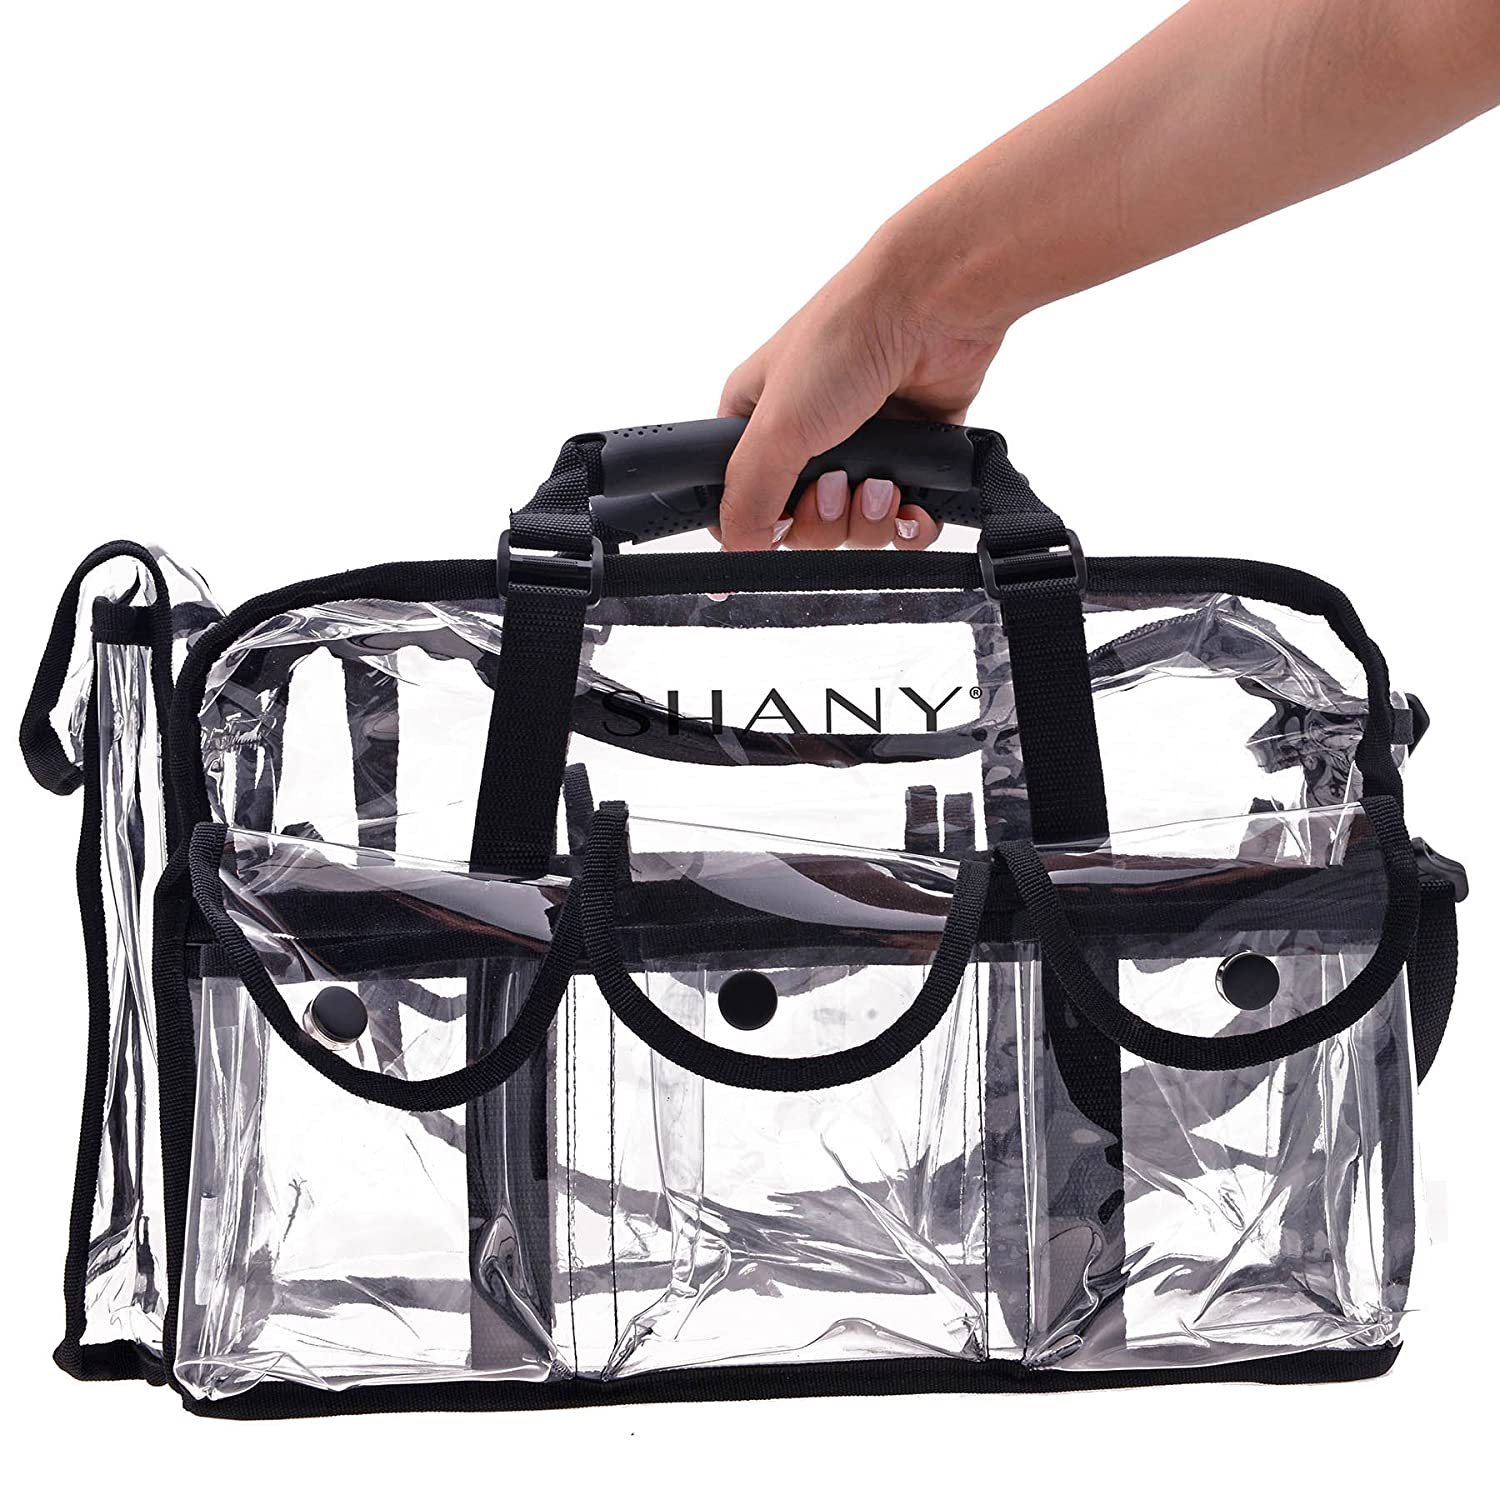 SHANY Clear Makeup Bag, Pro Mua rectangular Bag with Shoulder Strap, Large (BLACK) : Beauty